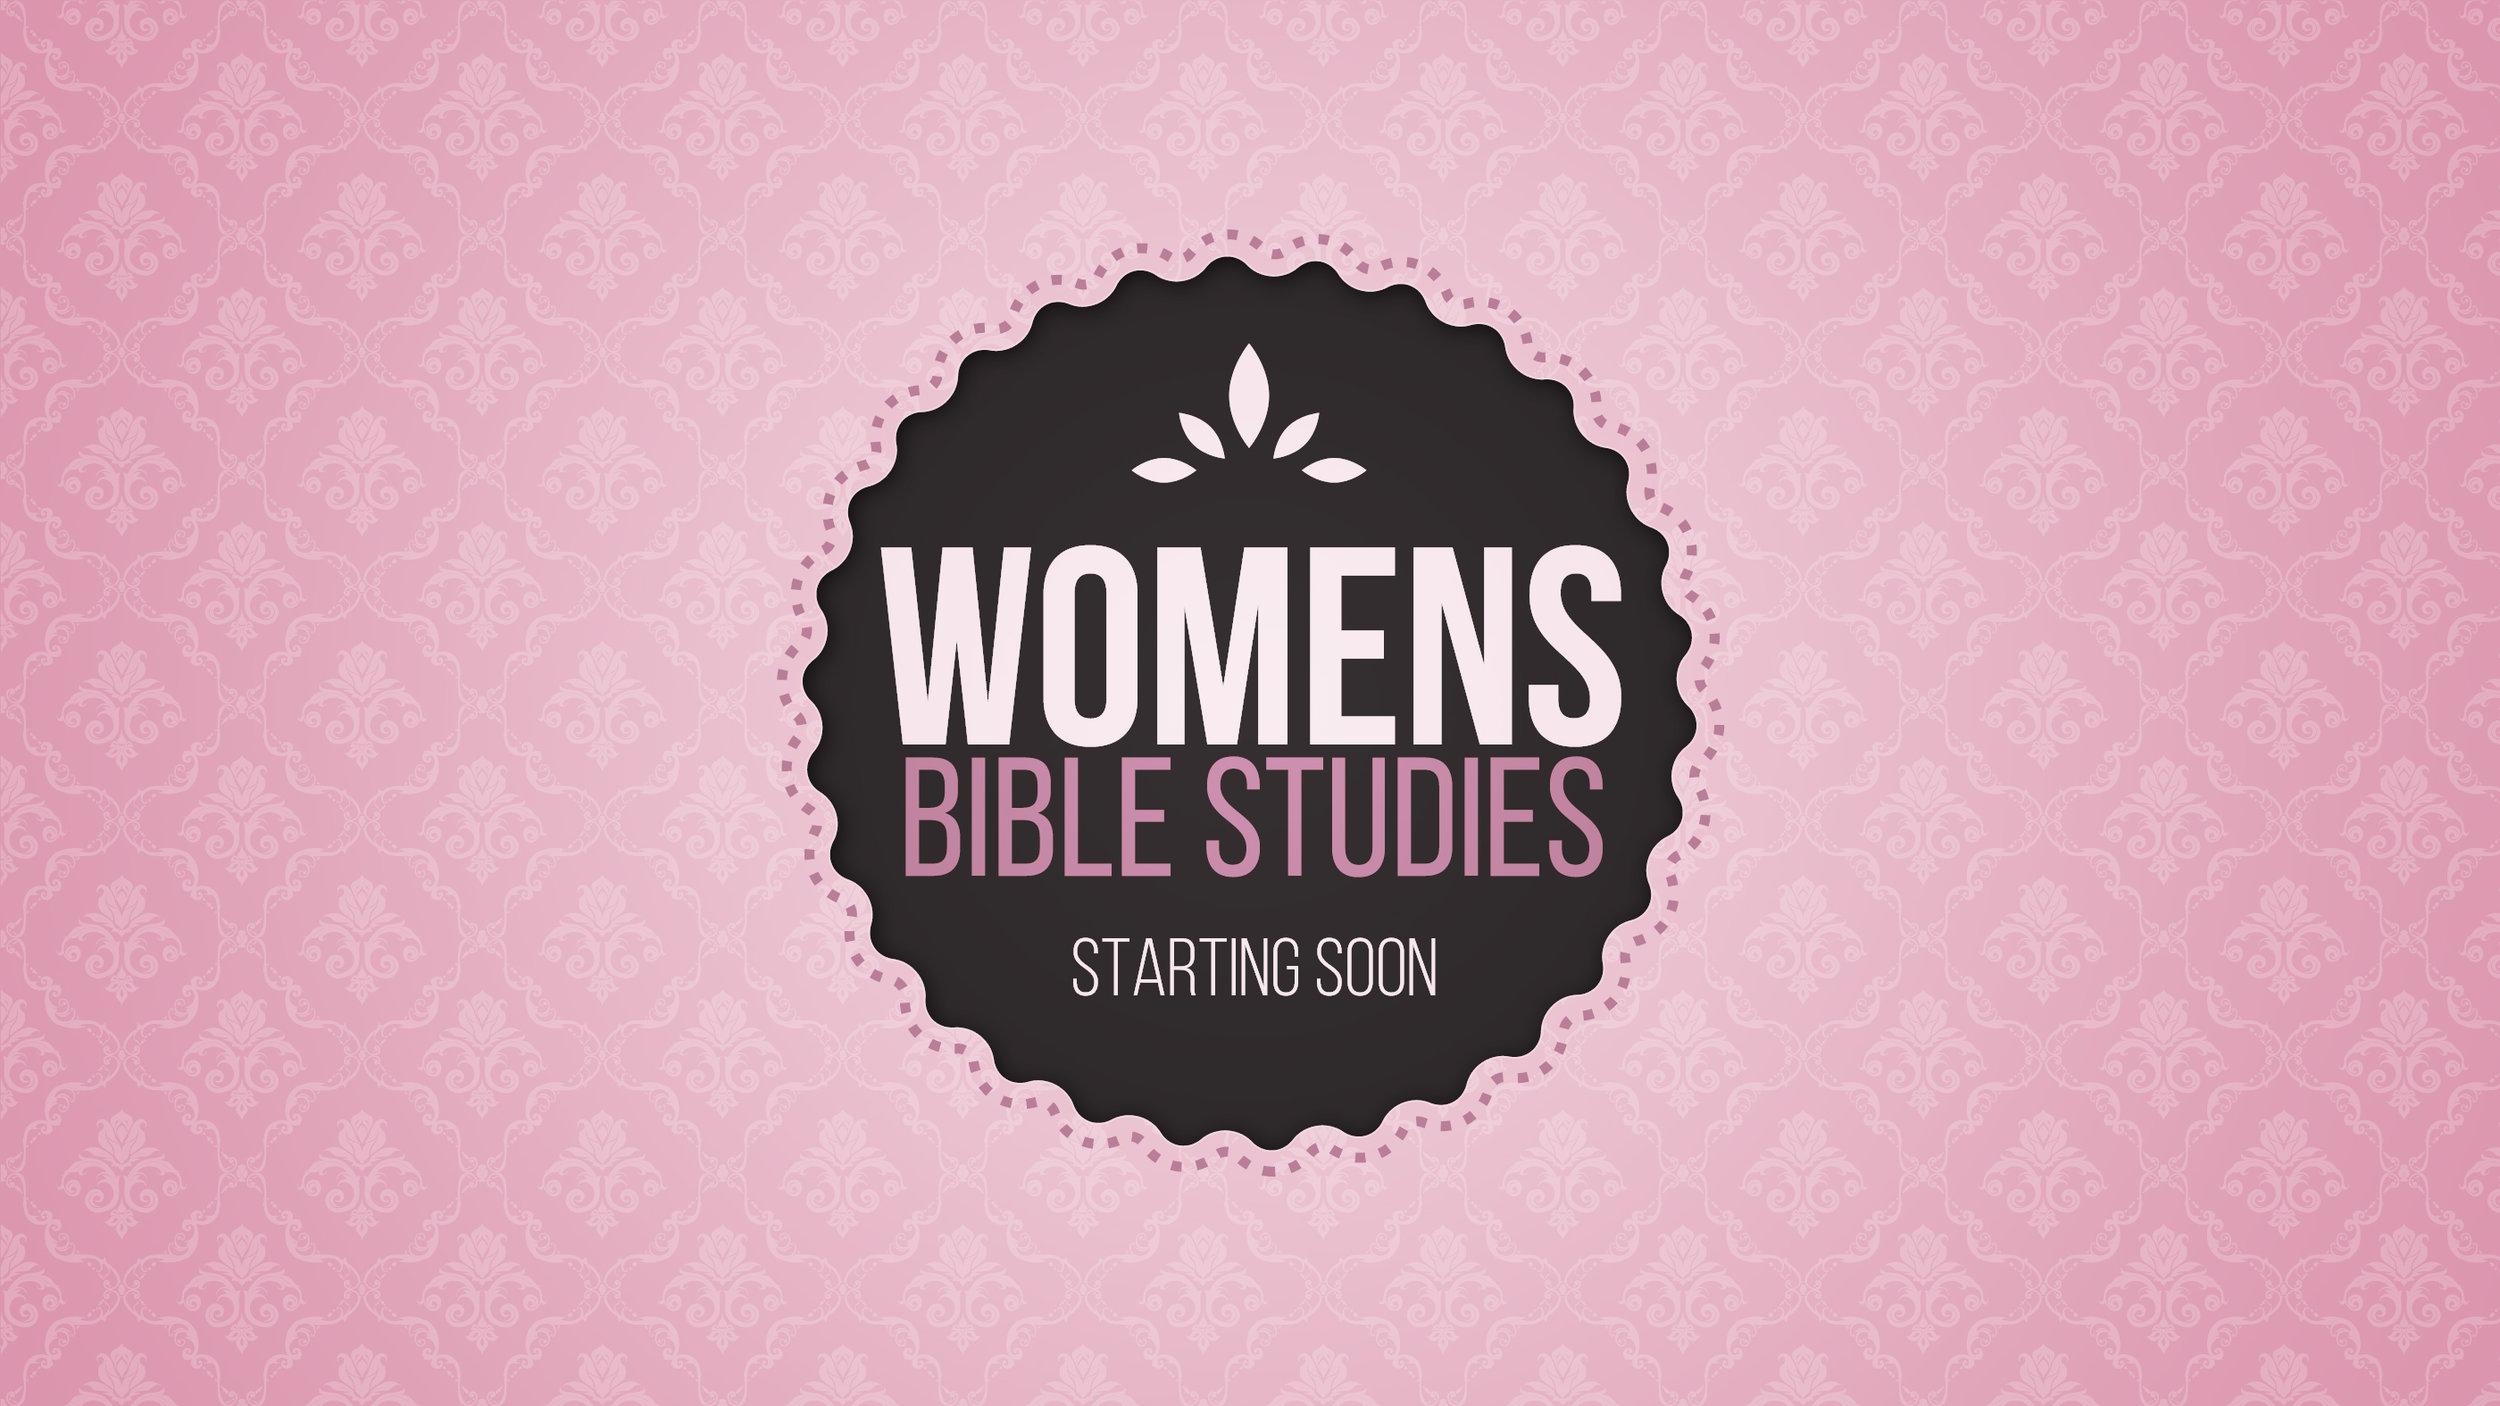 New-Womens-Bible-Studies.jpg